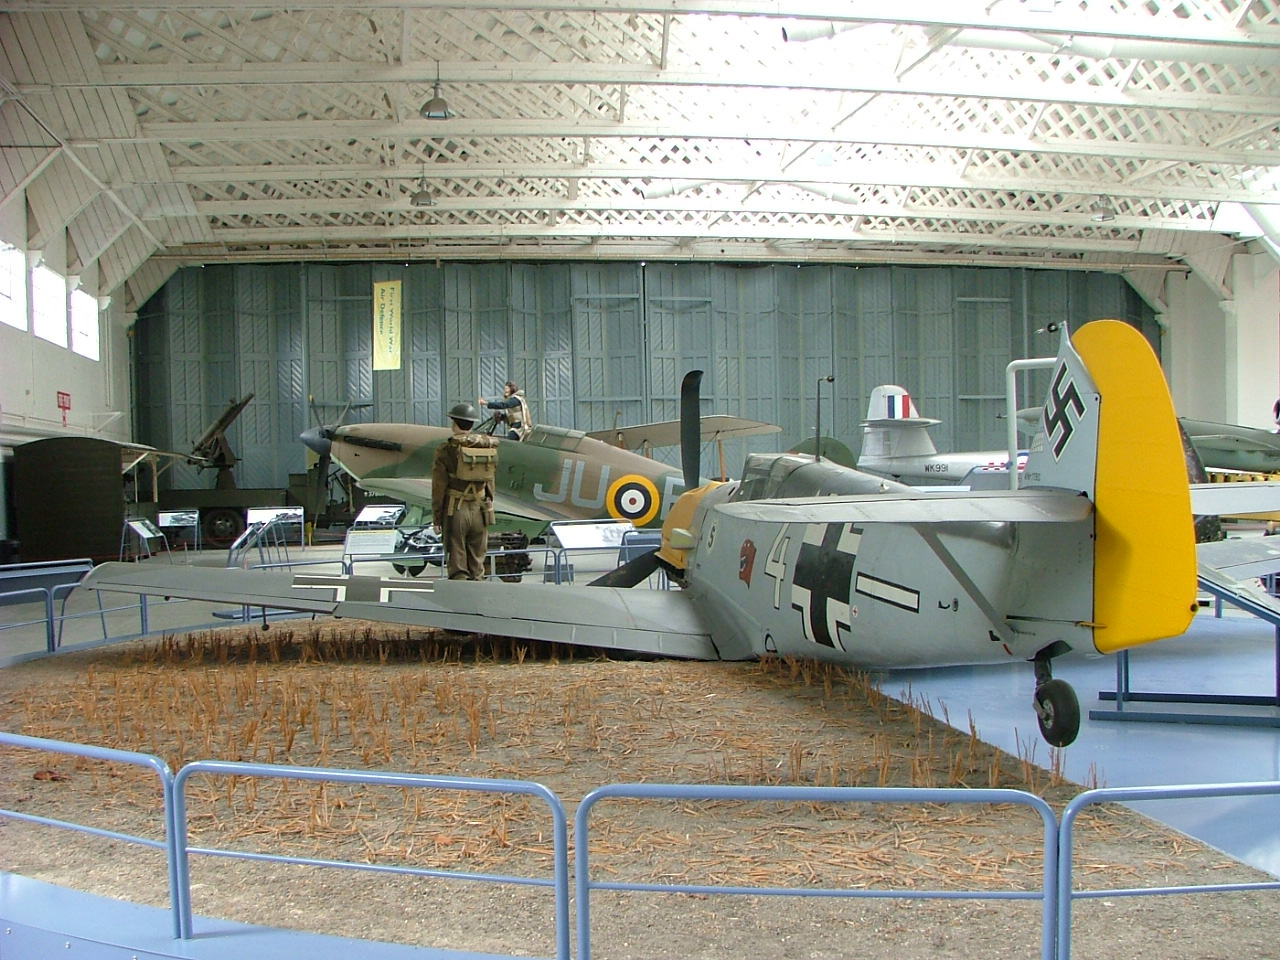 A photo of large hangar with aircraft displayed within it.